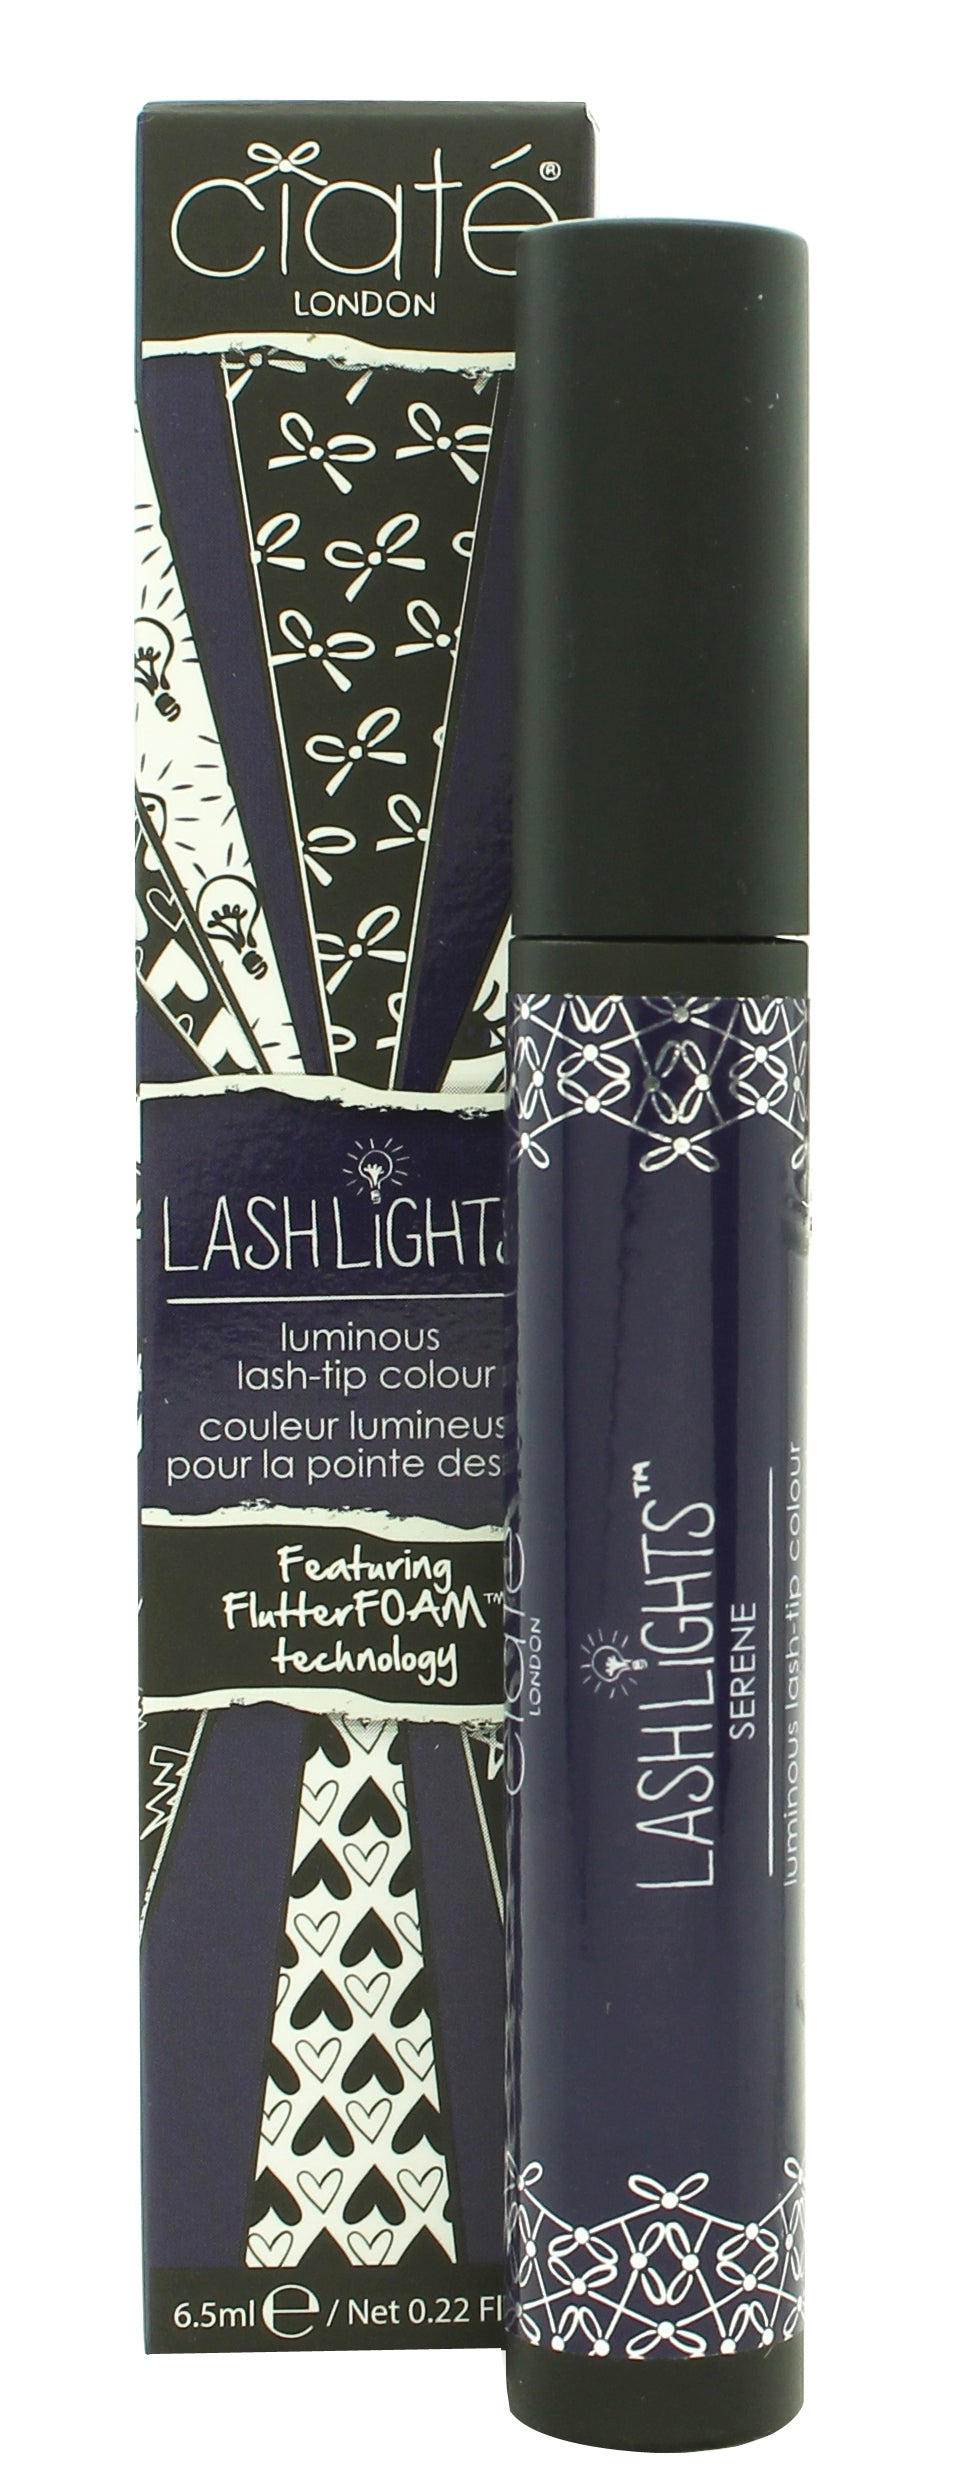 Ciate Lashlights Mascara 6.5ml - Serene